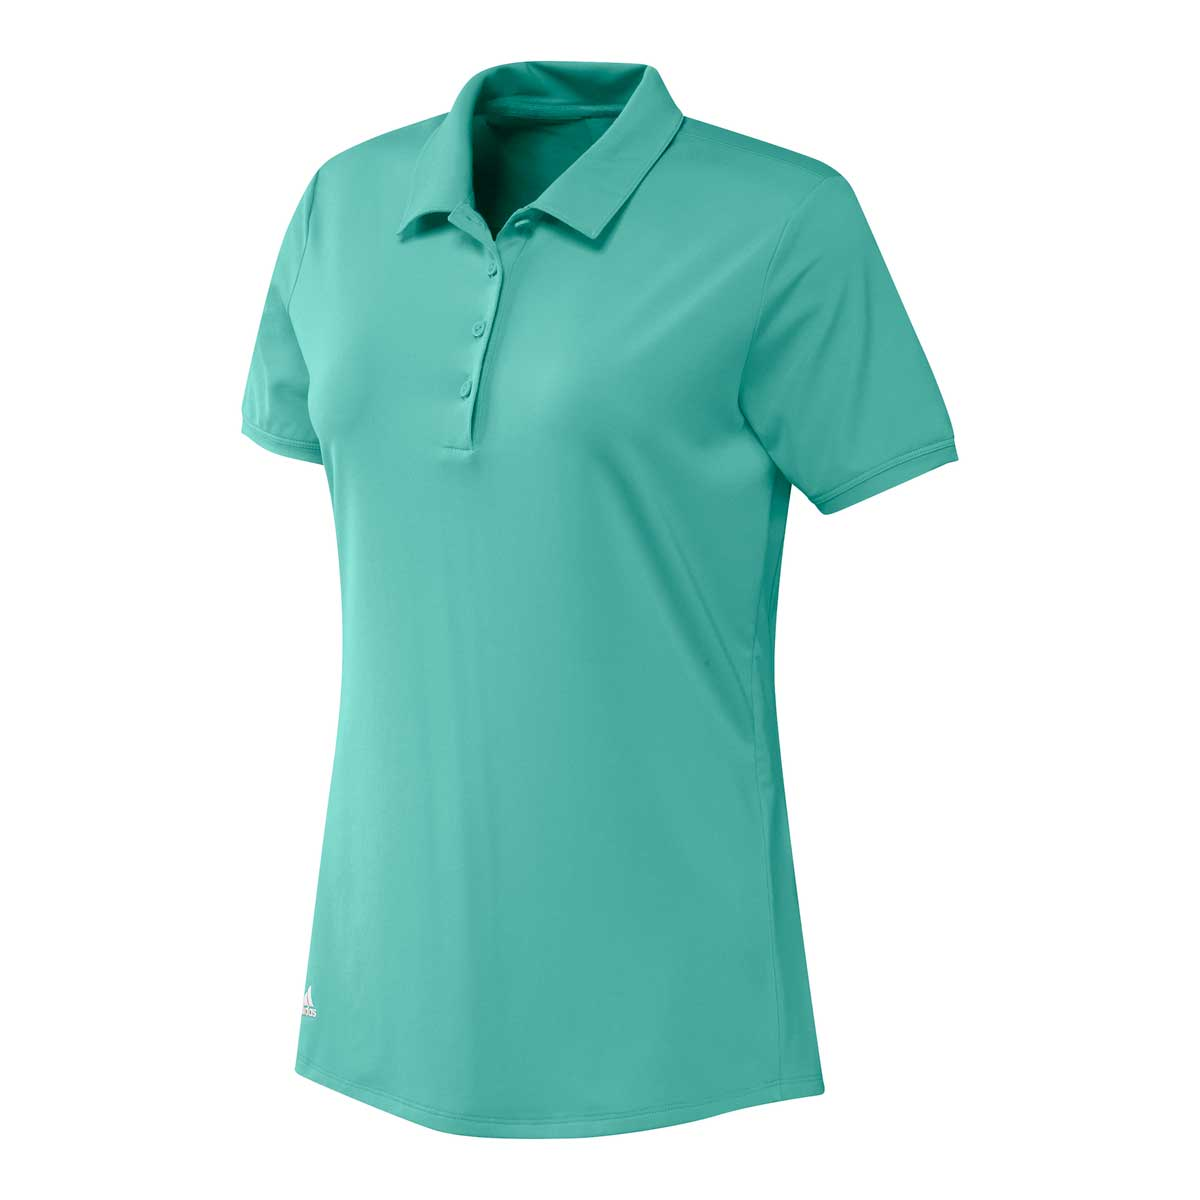 Adidas Women's Ultimate 365 Solid Acid Mint Polo